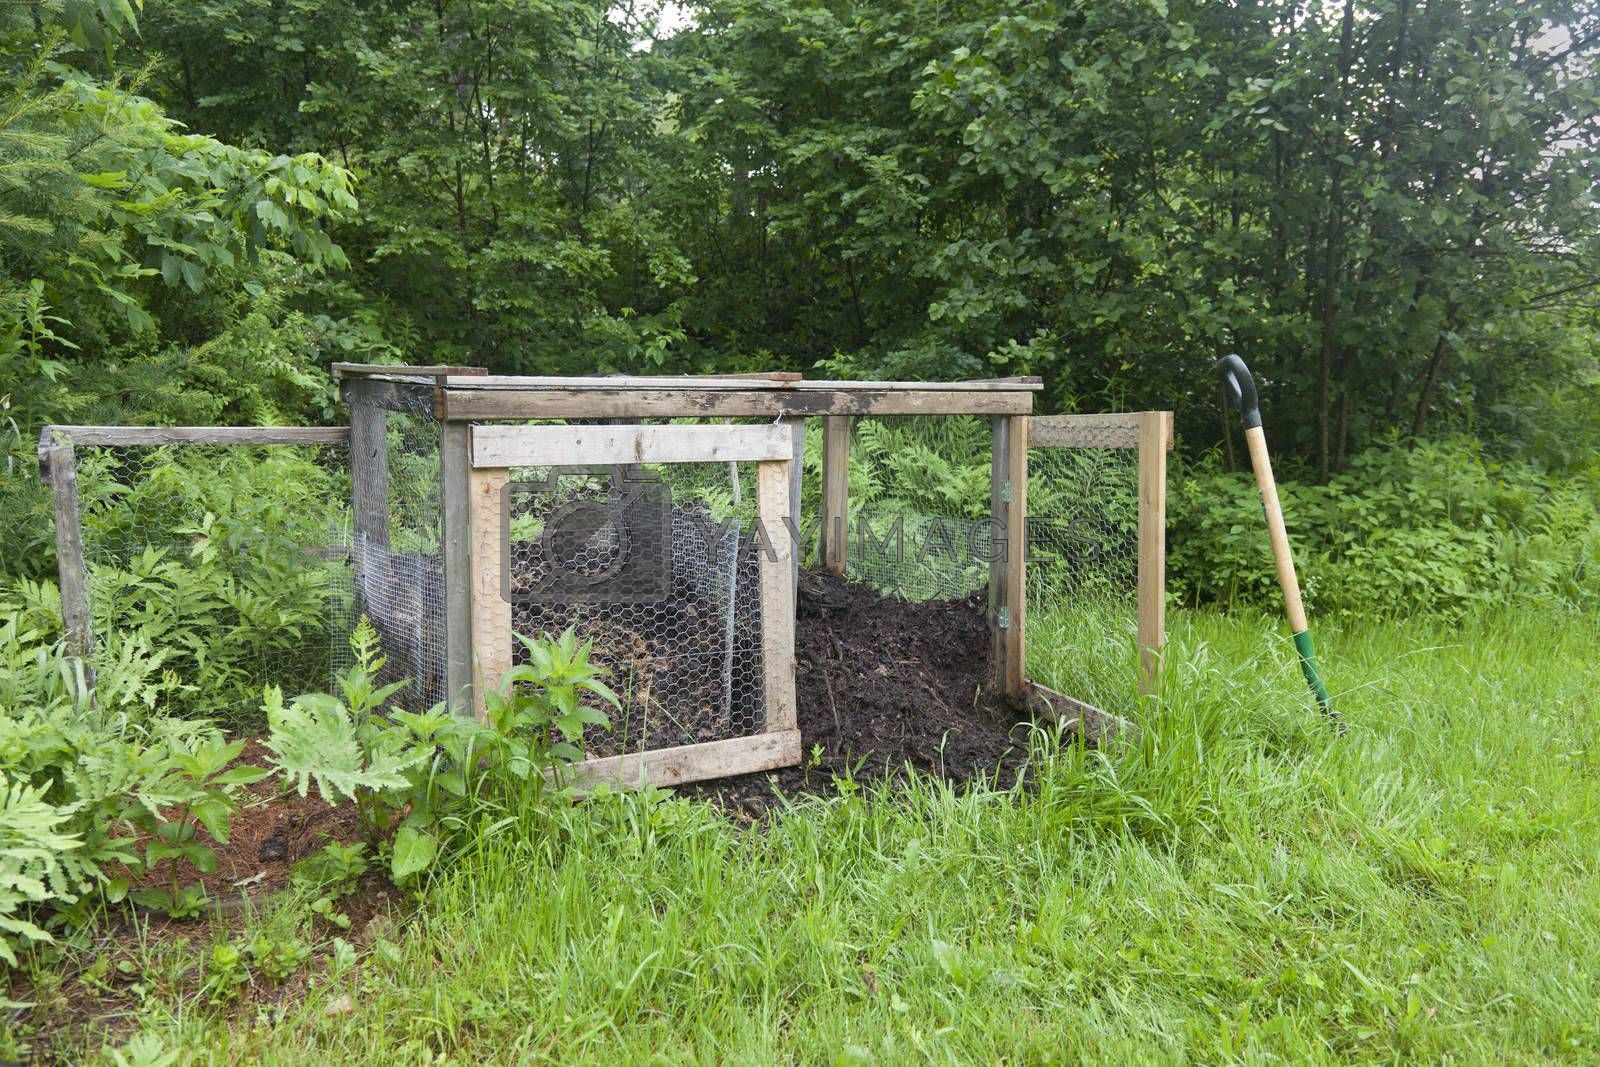 Royalty free image of Rural Compost Bin by mothy20